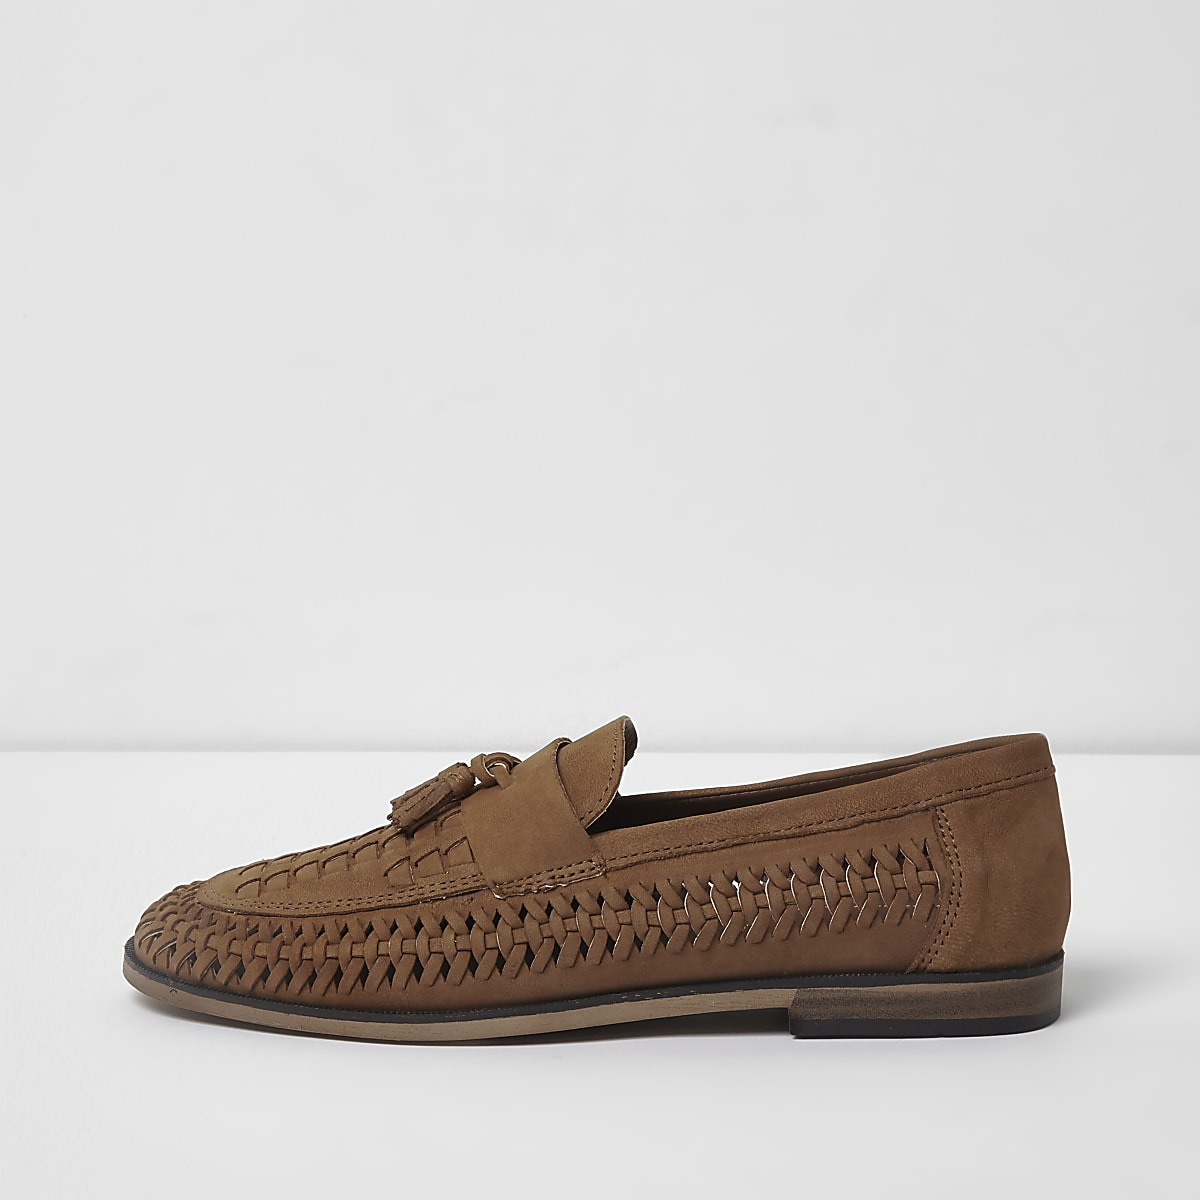 Tan leather woven tassel loafers